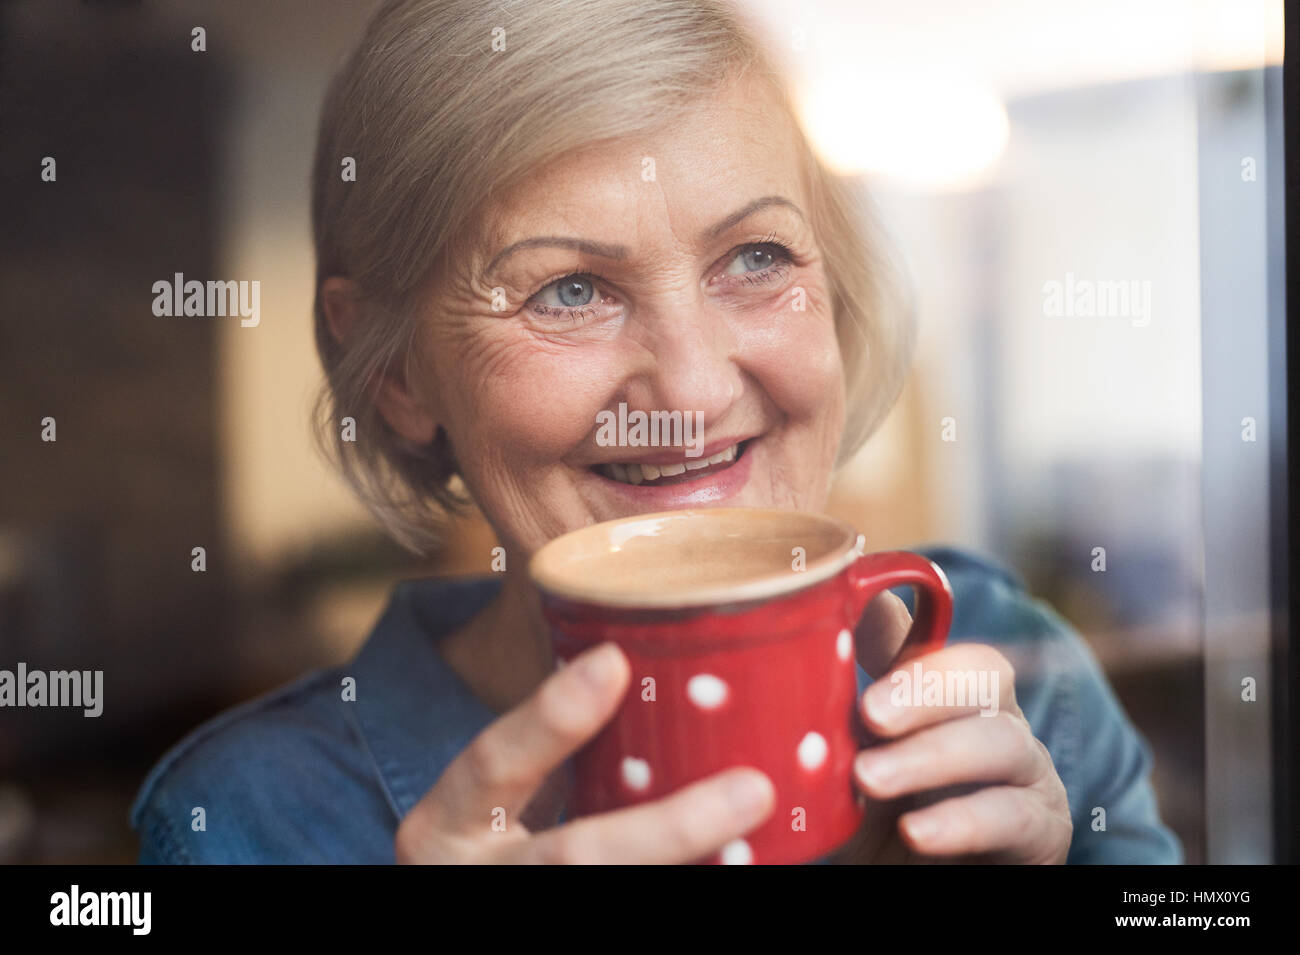 322be1edd7 Senior woman at the window holding a cup of coffee - Stock Image